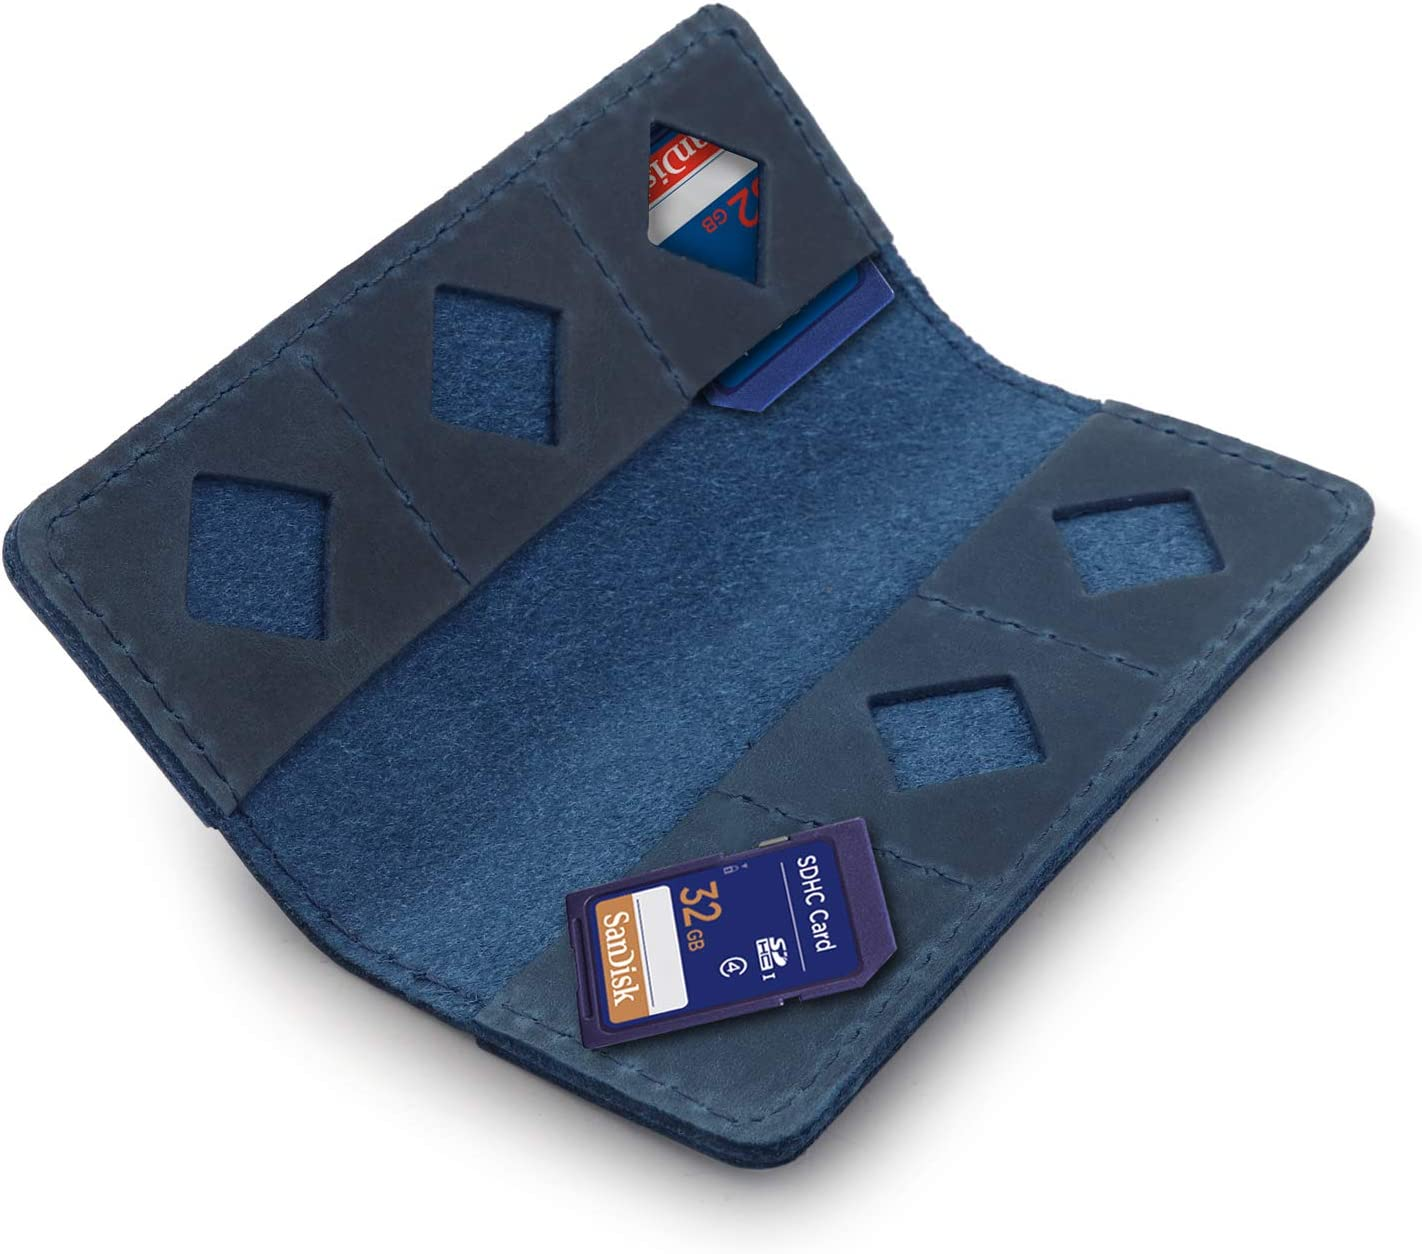 MegaGear Leather SD Card Holder with 12 Card Slots